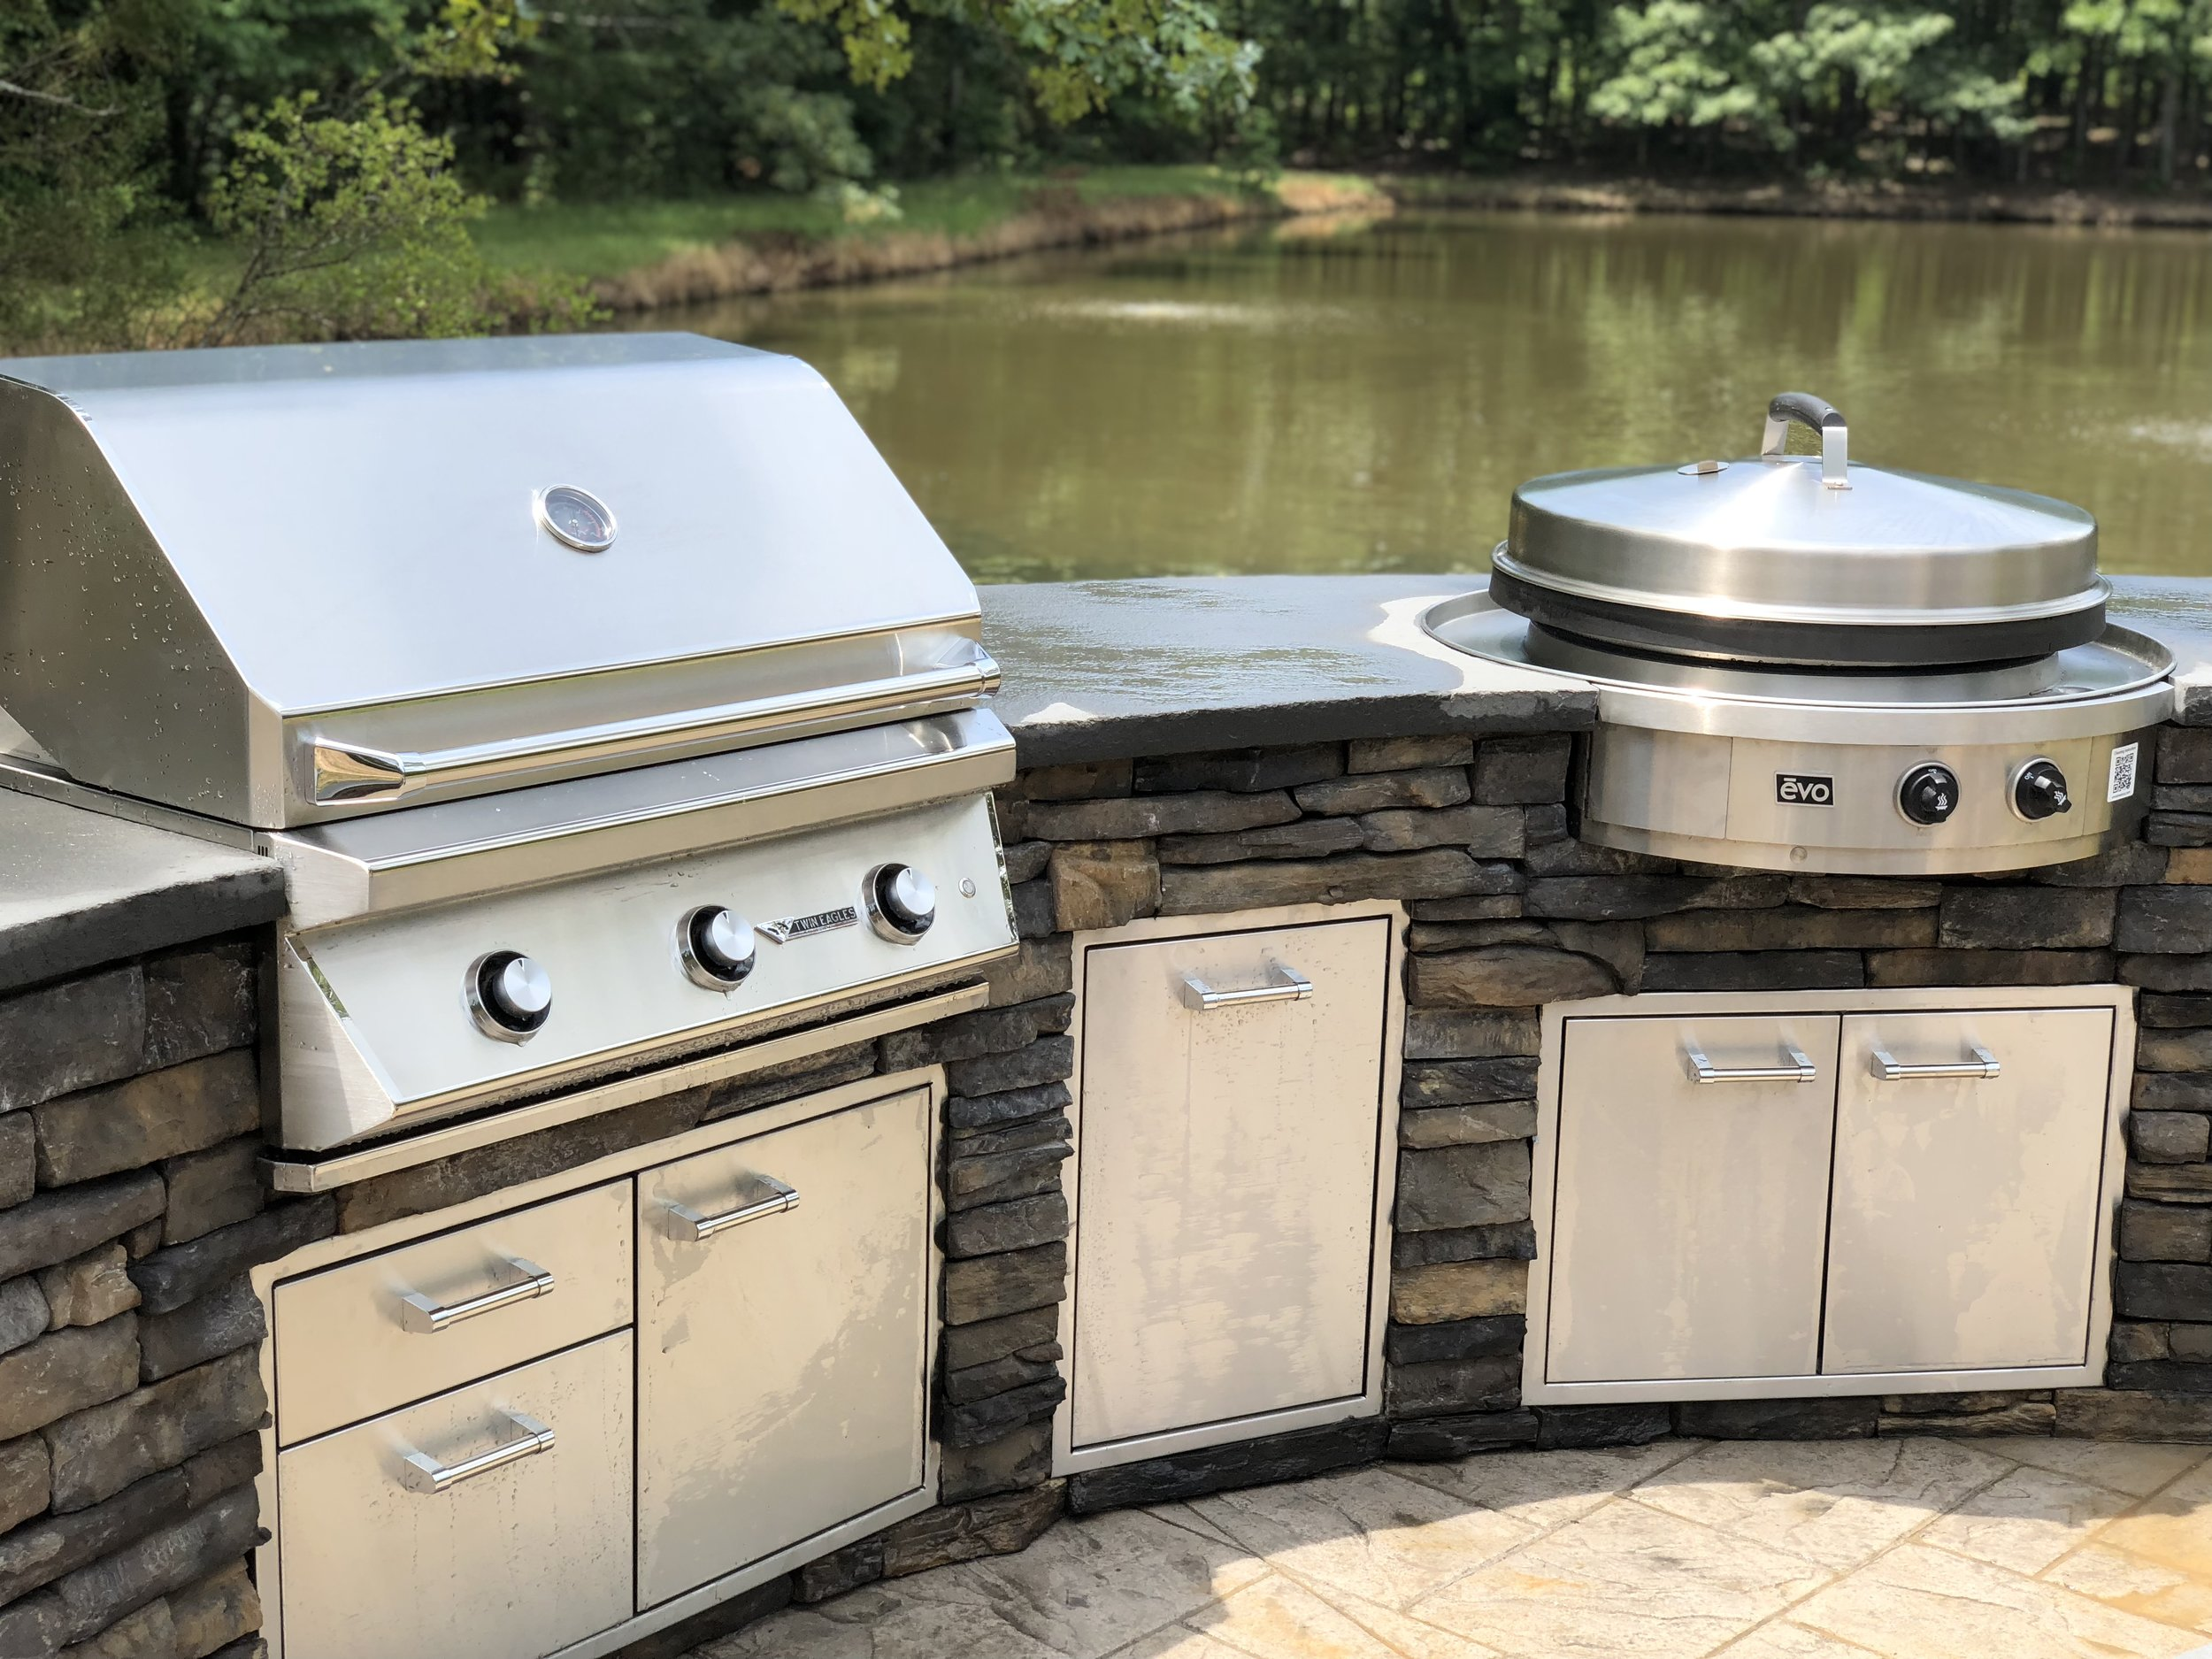 grill for outdoor kitchen aid coffee kitchens charlotte company every project starts with a complimentary onsite consultation and 3d sketch of our islands are constructed high grade aluminum